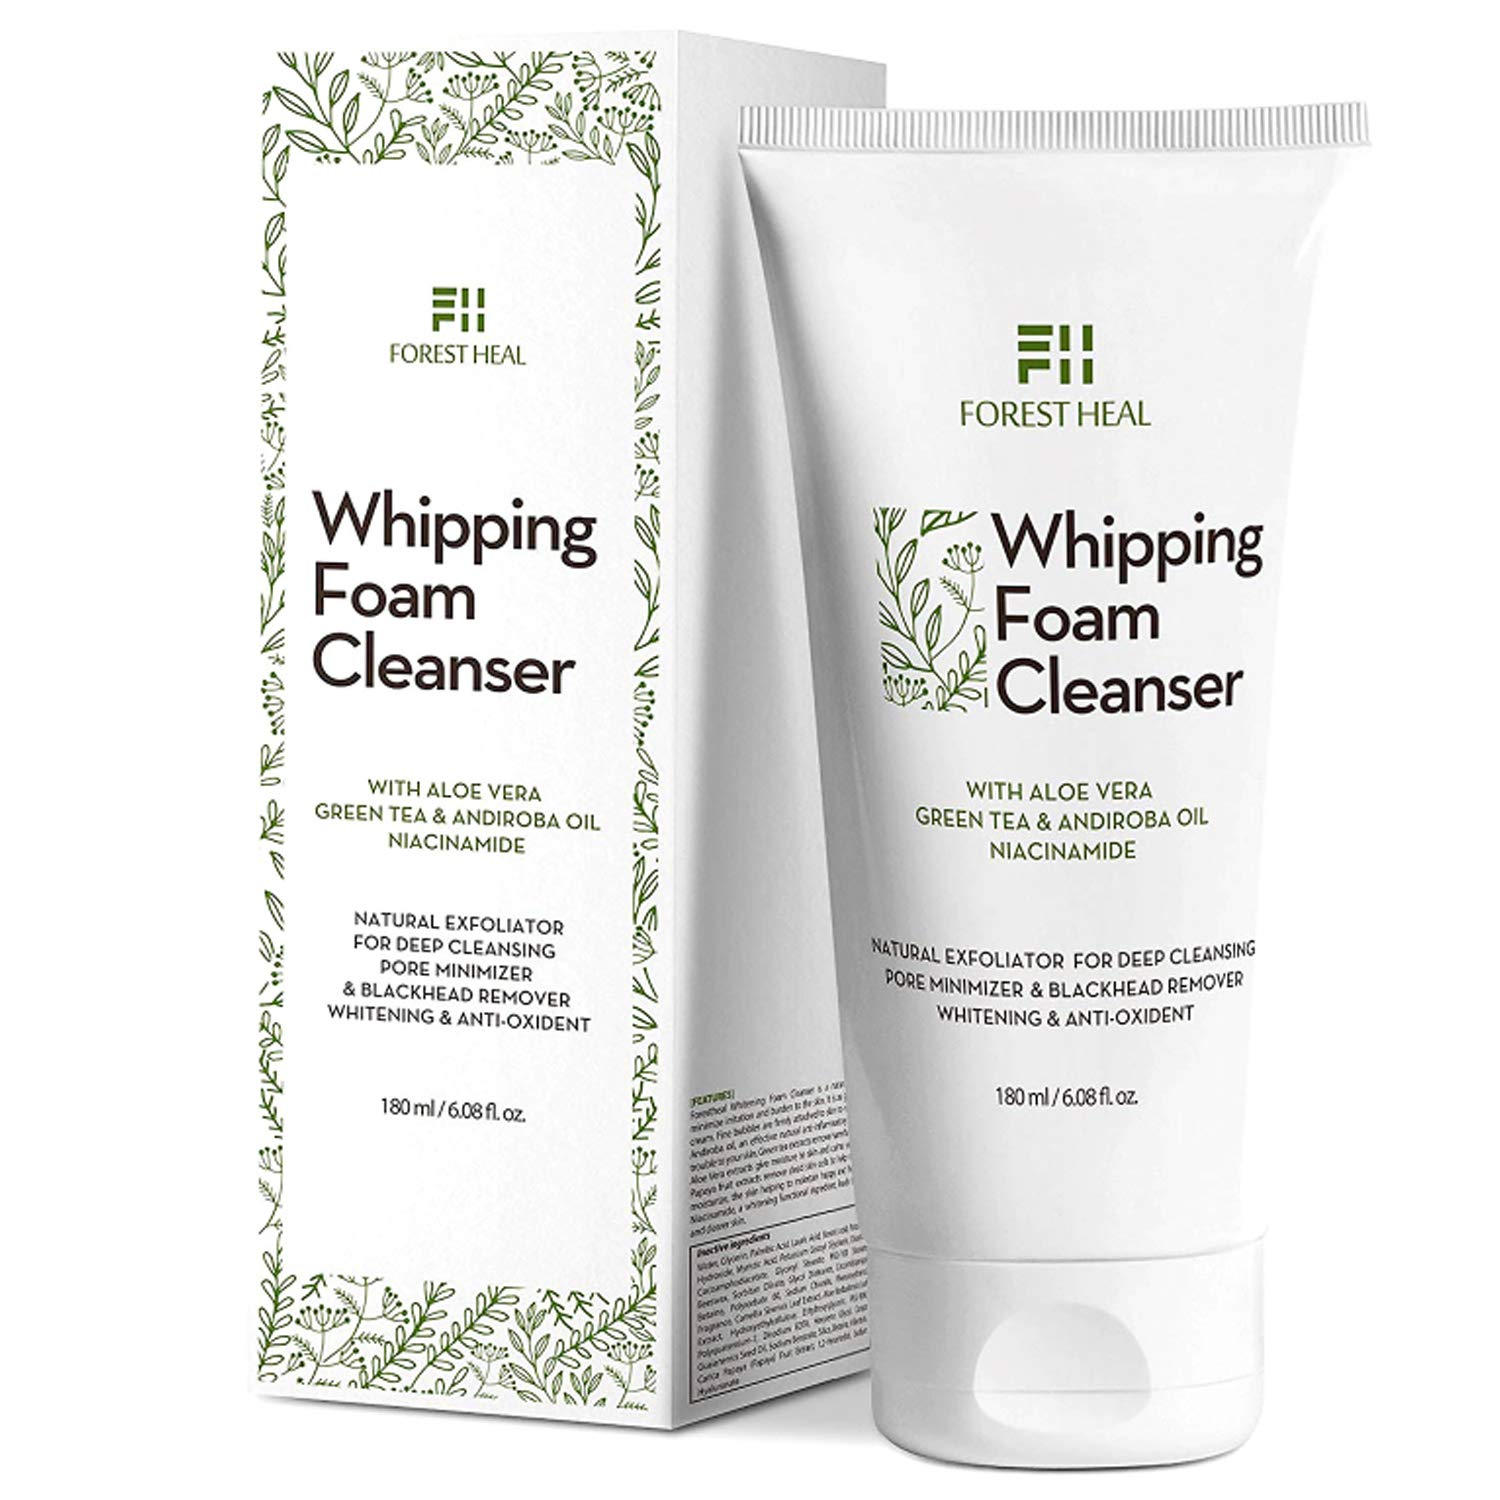 Natural Face Wash and Hand Cleanser - Coconut Based Exfoliating Face Cleanser with Aloe Vera, Papaya Extract, Green Tea for Natural Antioxidant Cleansing Foam, Forest Heal (6.08 Fl Oz.)